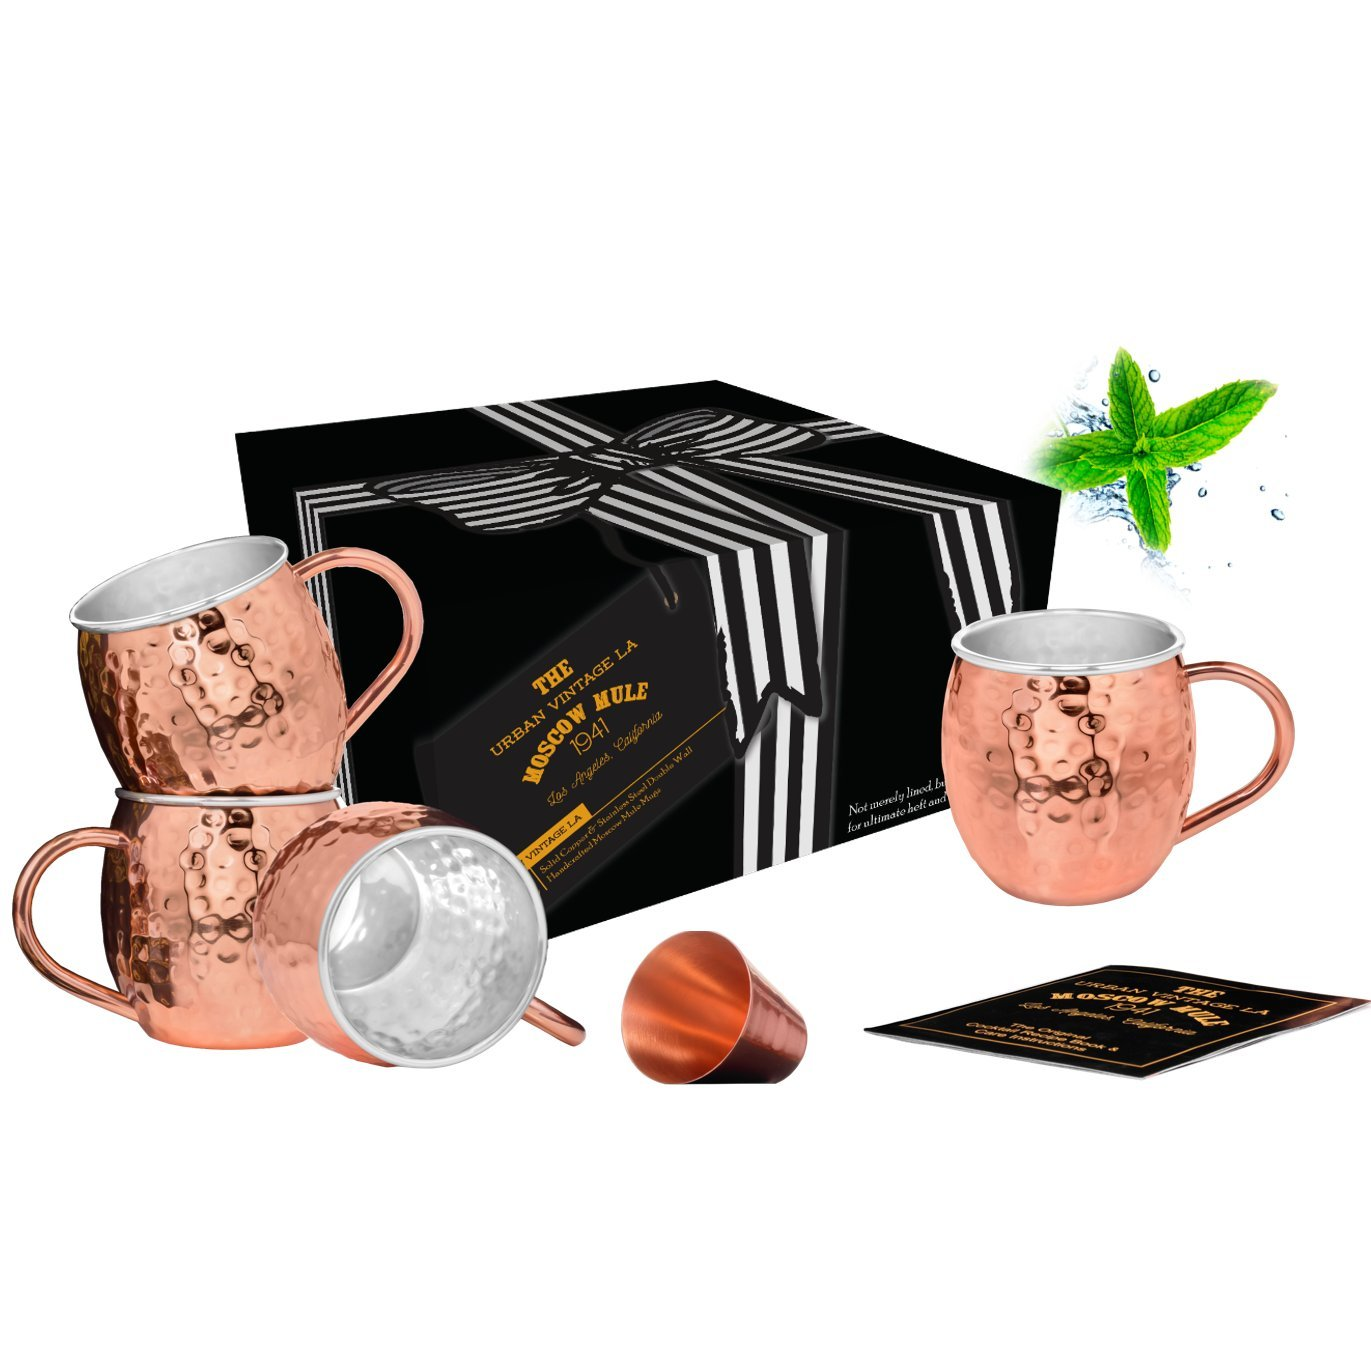 Set of 4 Moscow Mule Copper Mugs with Stainless-Steel Lining | Set of 4 Copper Mugs Lined with Stainless-Steel | Set of 4 Lined Copper Cups for Moscow Mules or Mint Juleps | Set Includes Shot Glass